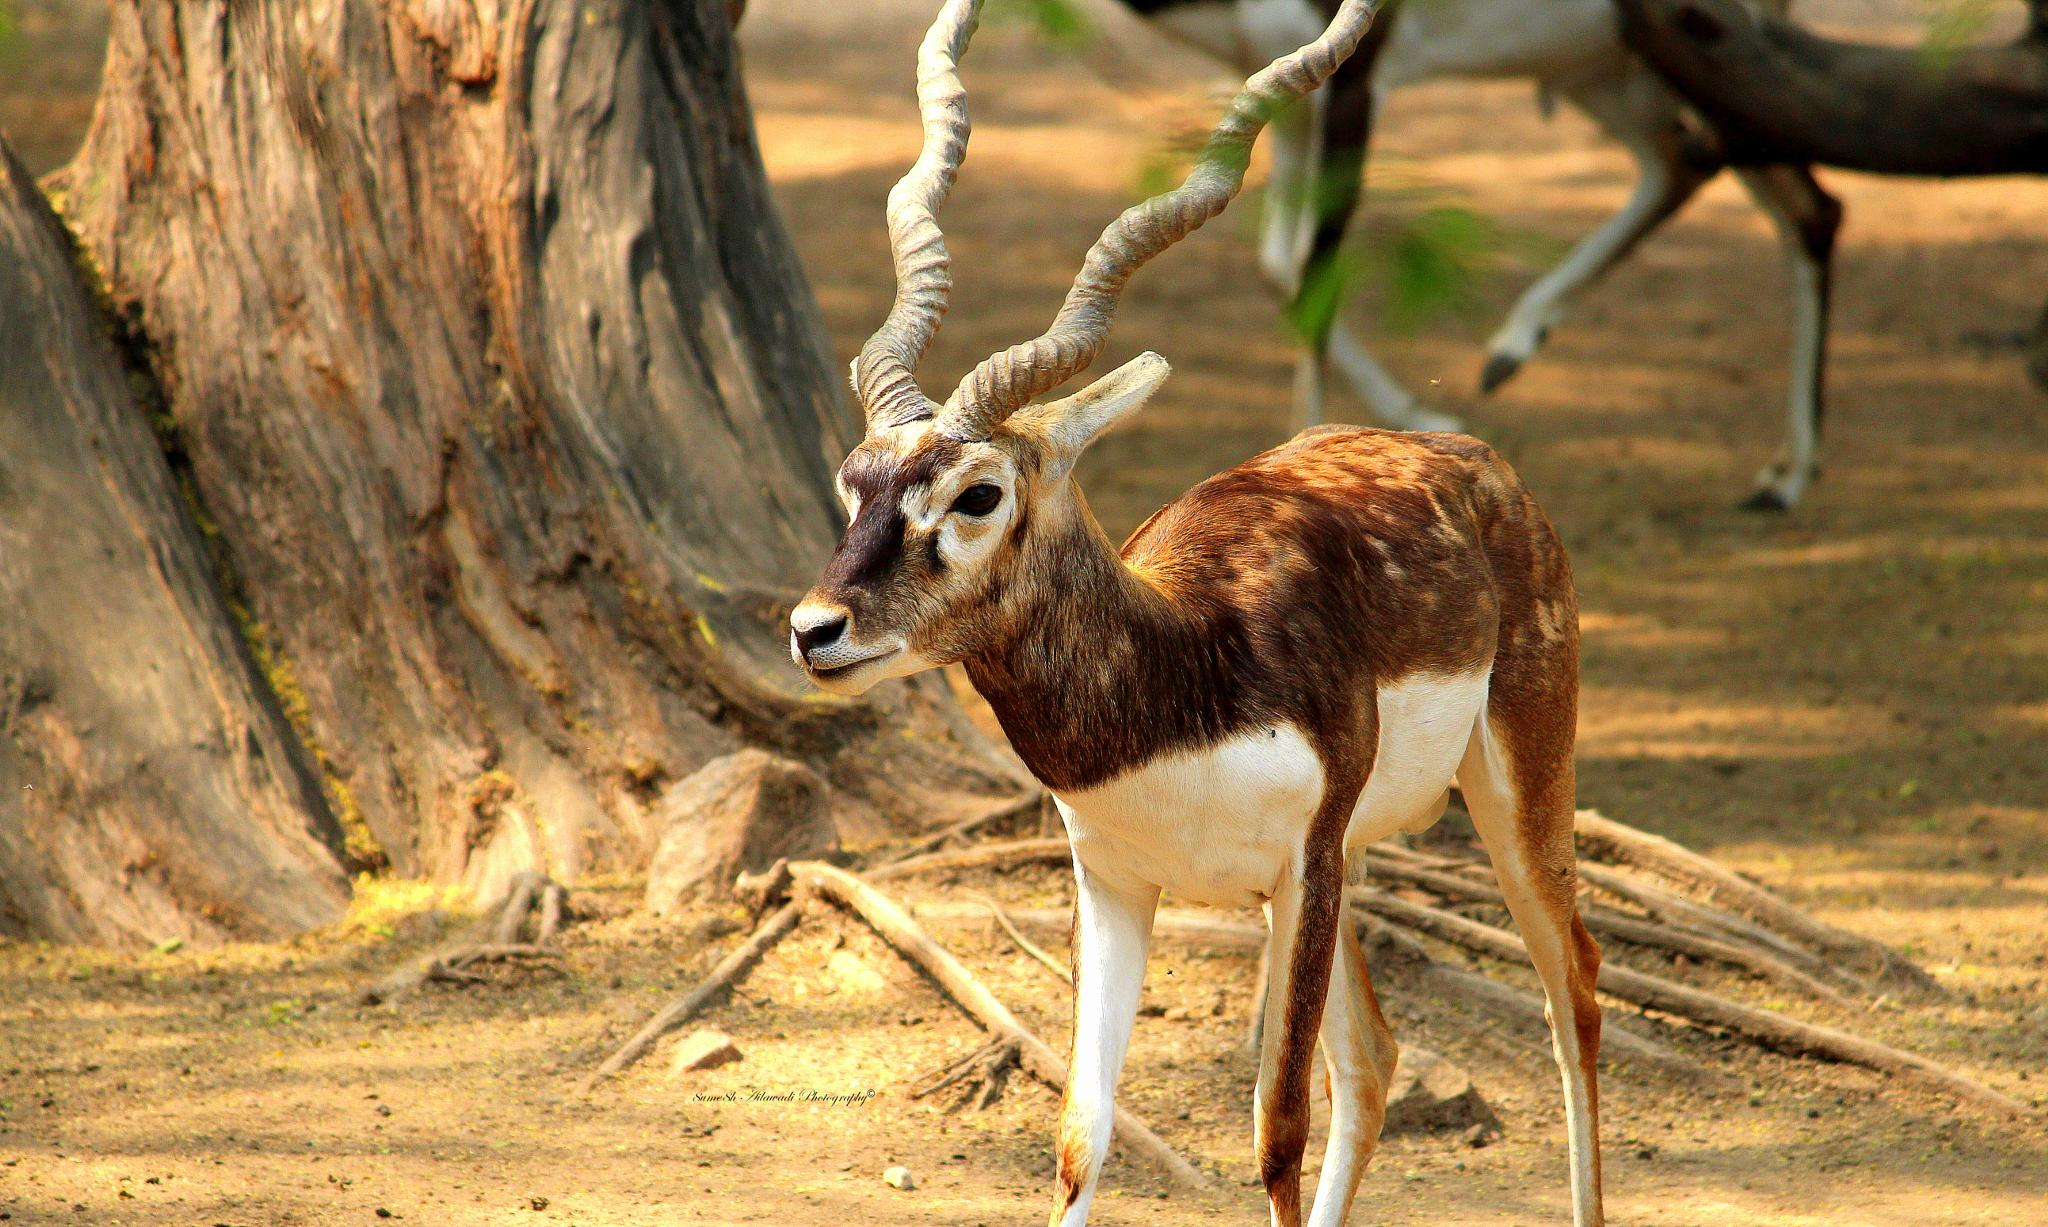 The Black Buck by Sumesh Ailawadi